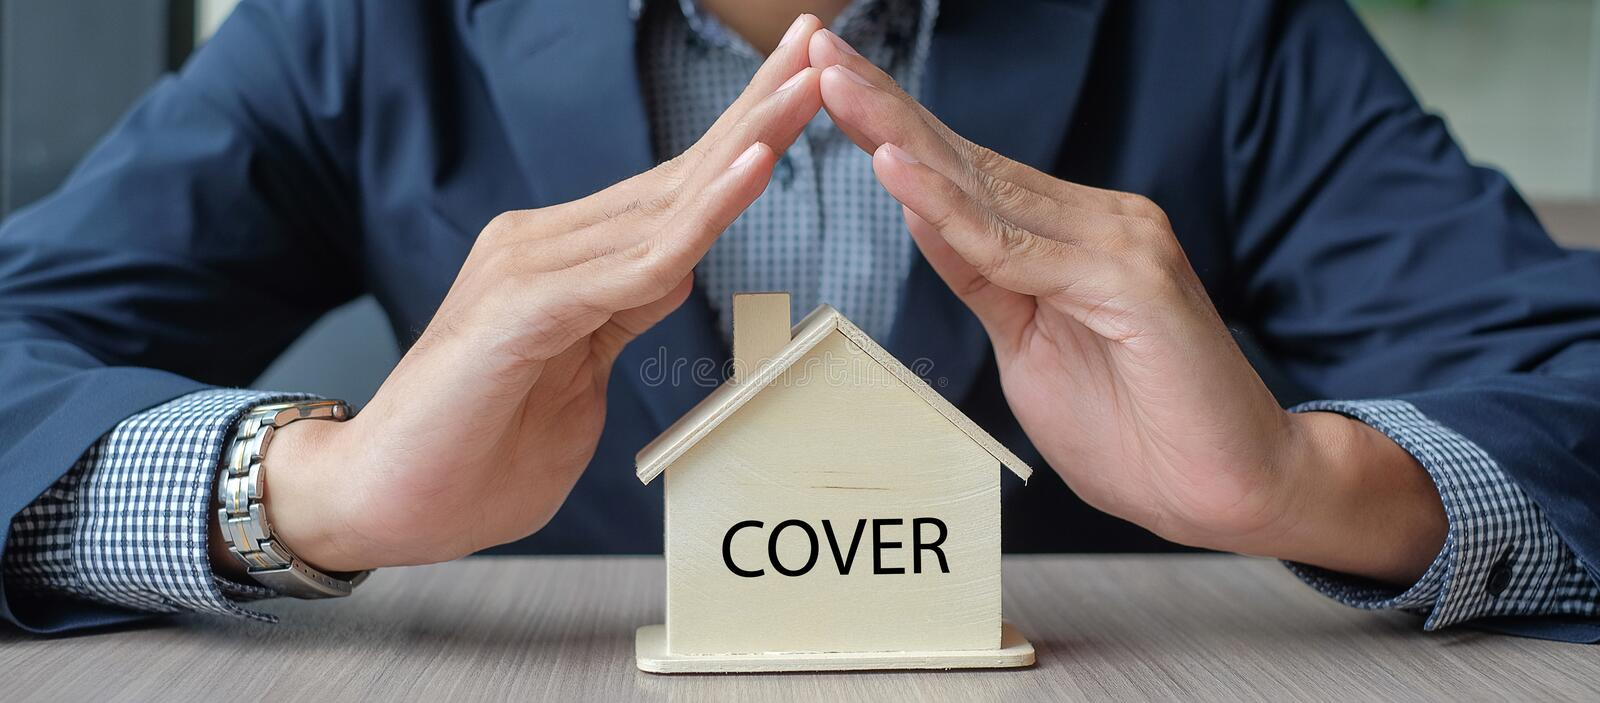 Businessman hands holding wooden House model. Property insurance and real estate. Businessman hands over wooden House model. Property insurance and real estate royalty free stock photography